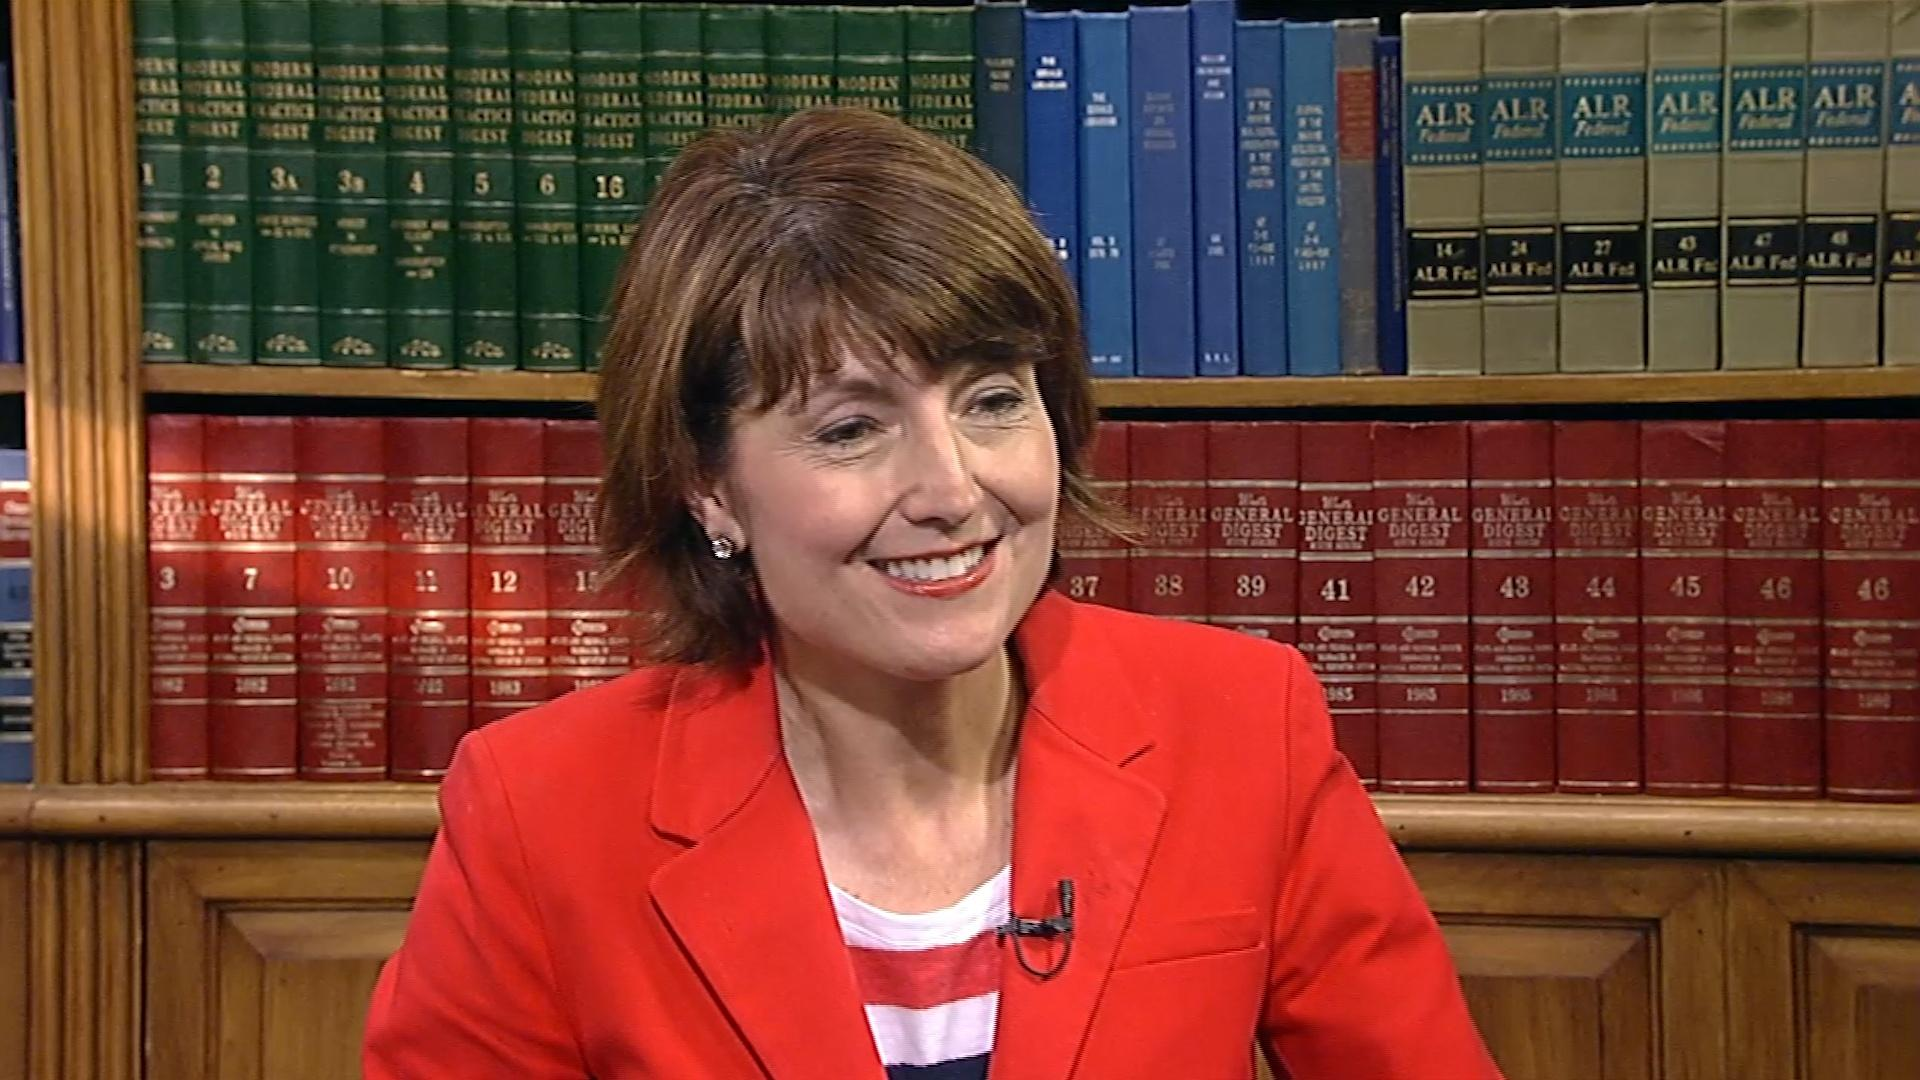 Women Thought Leaders: Rep. Cathy McMorris Rodgers